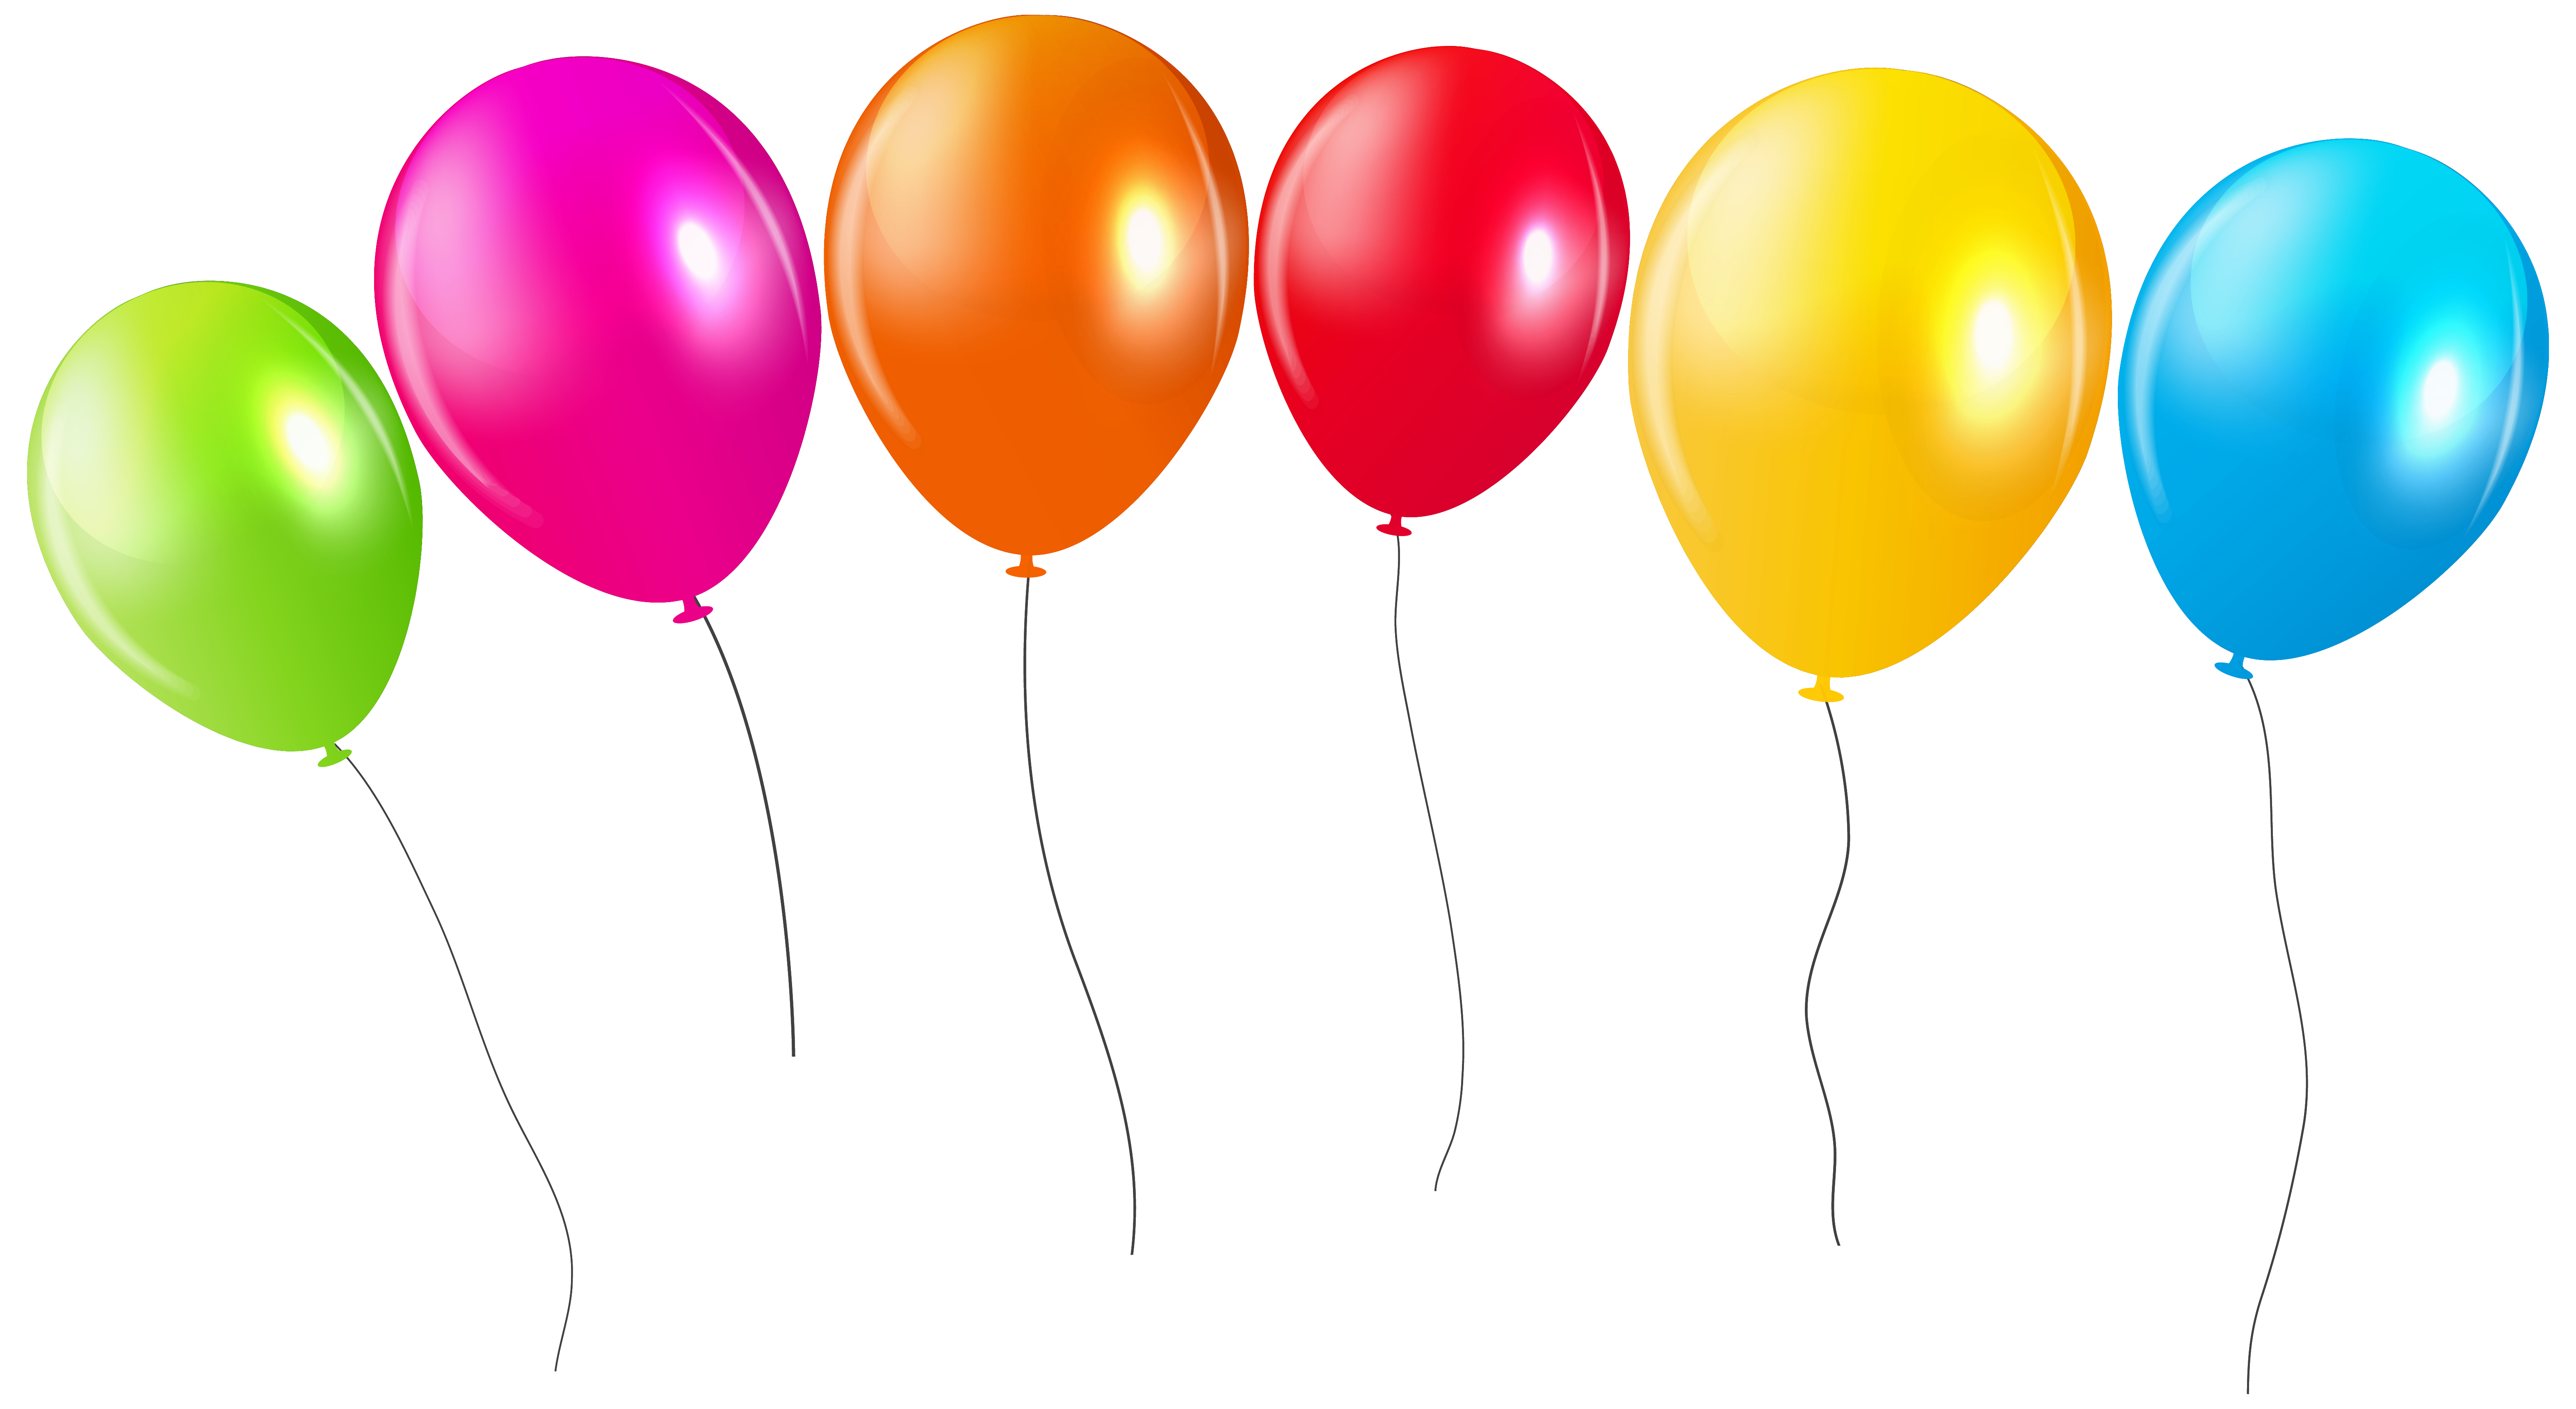 6280x3435 Transparent Colorful Balloons Png Cliparu200b Gallery Yopriceville